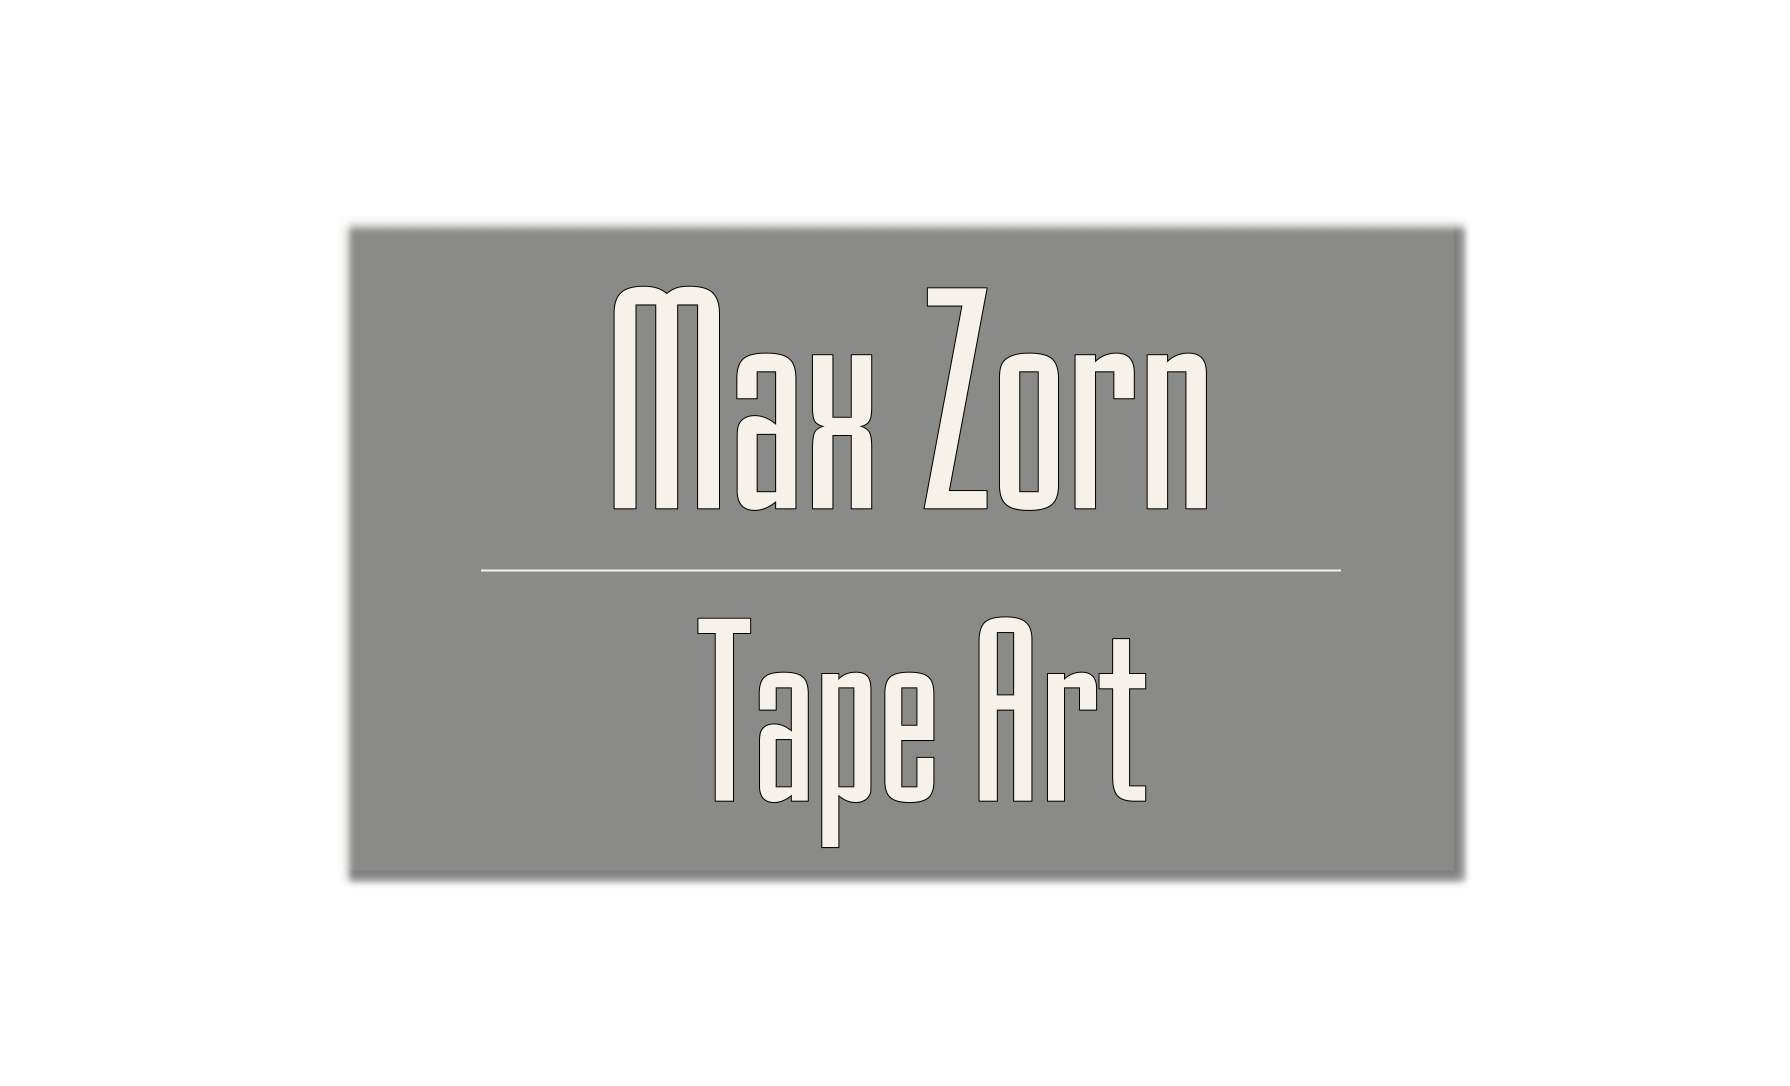 Tape Art, by Max Zorn, a street artist from Amsterdam, creating art with tape to beautify street lamps